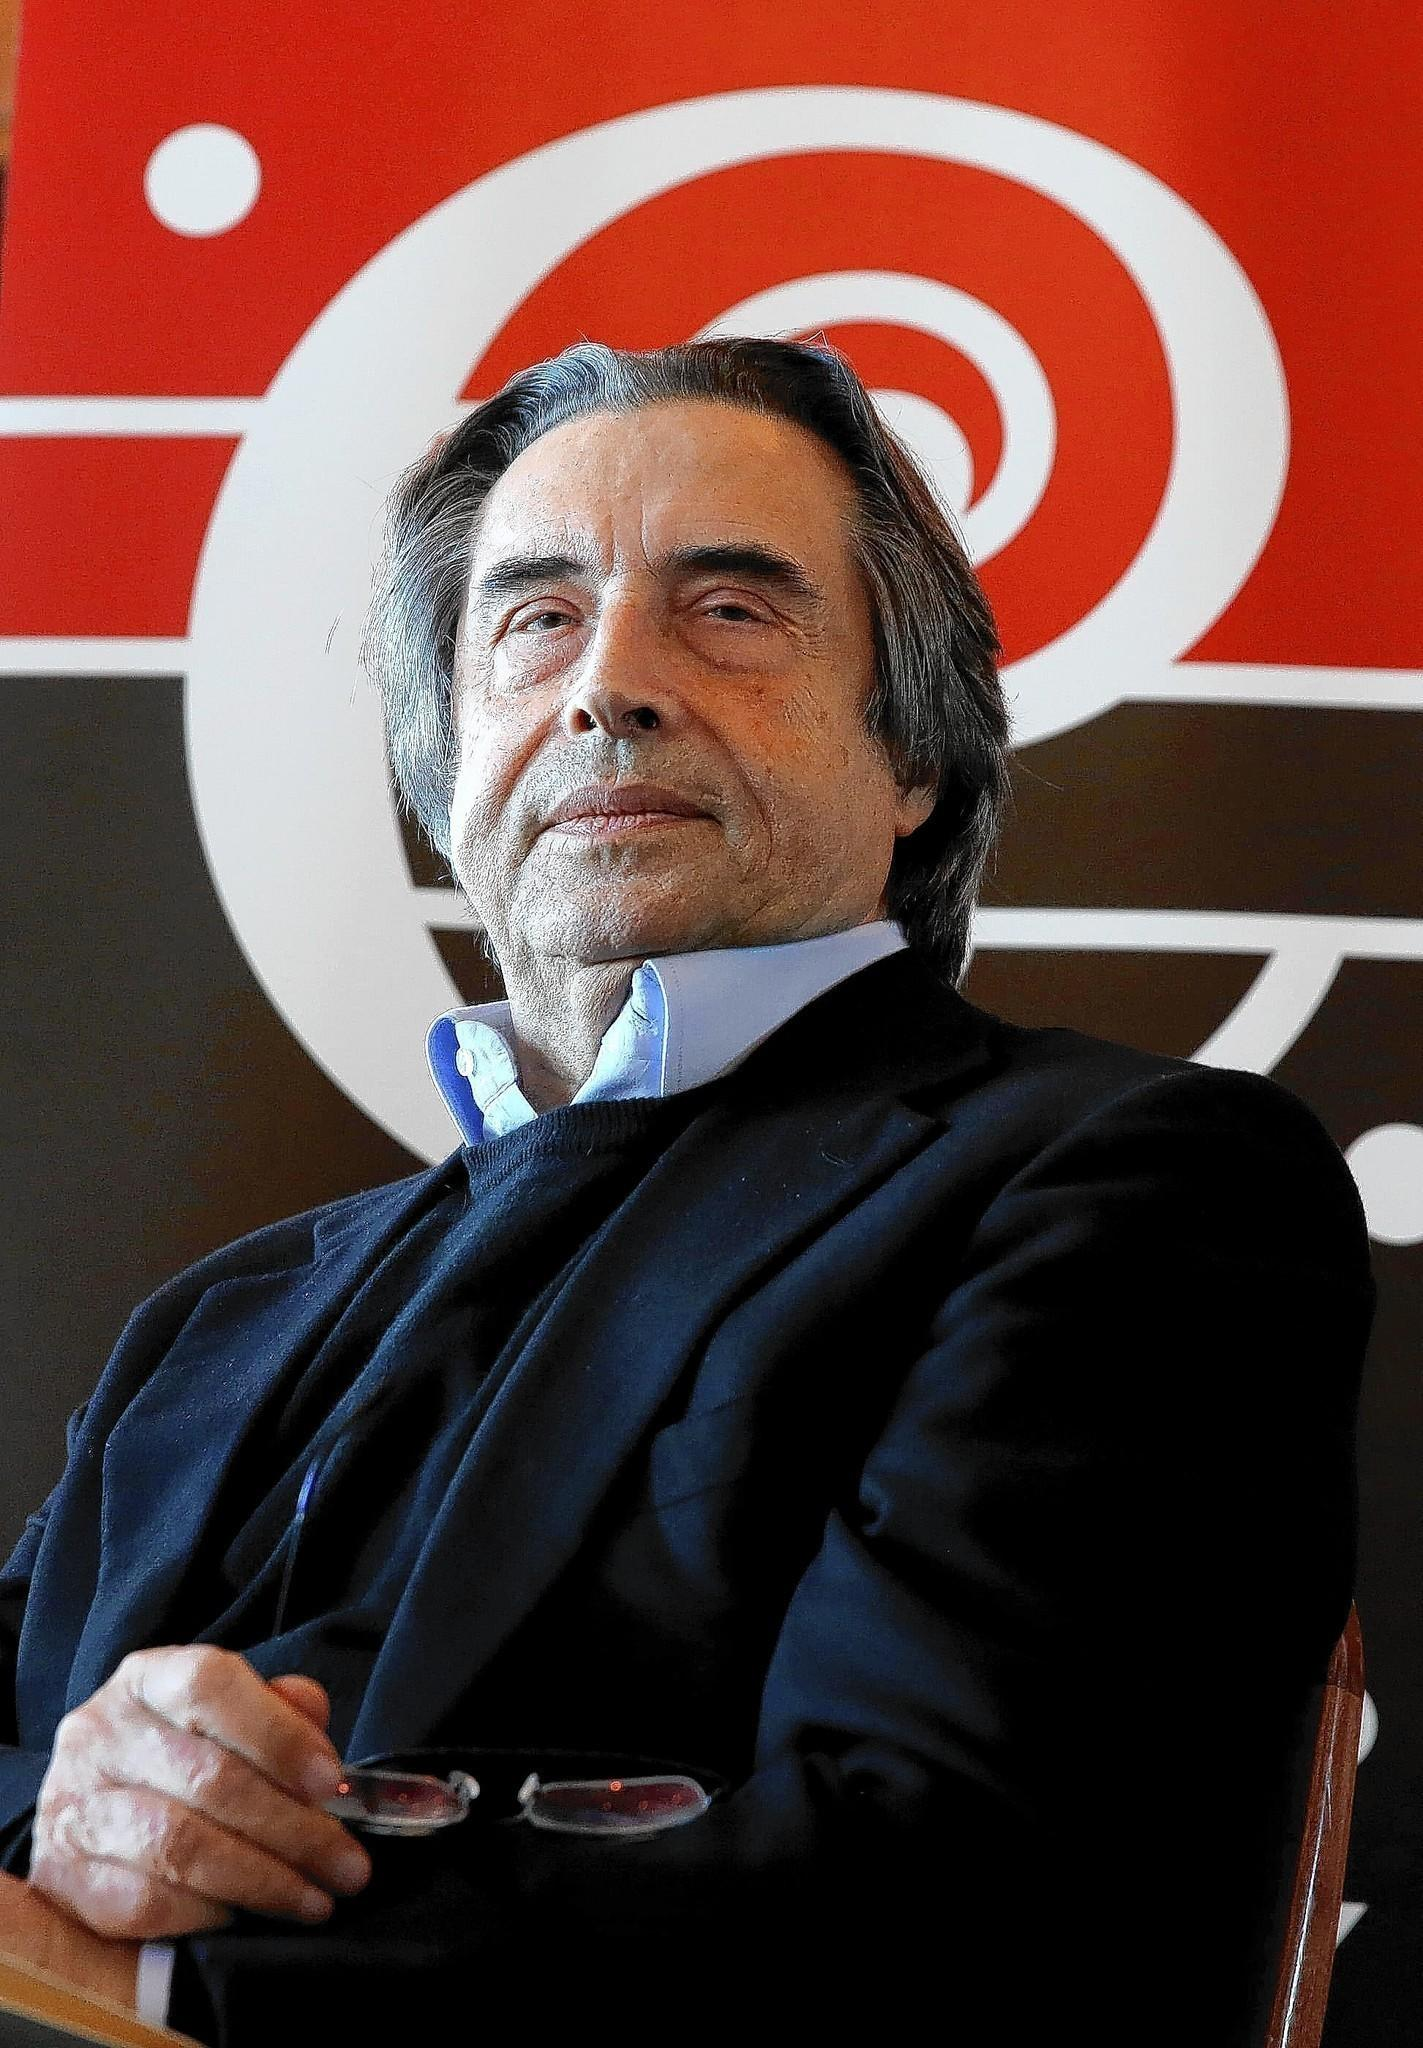 Chicago Symphony Orchestra music director Riccardo Muti.